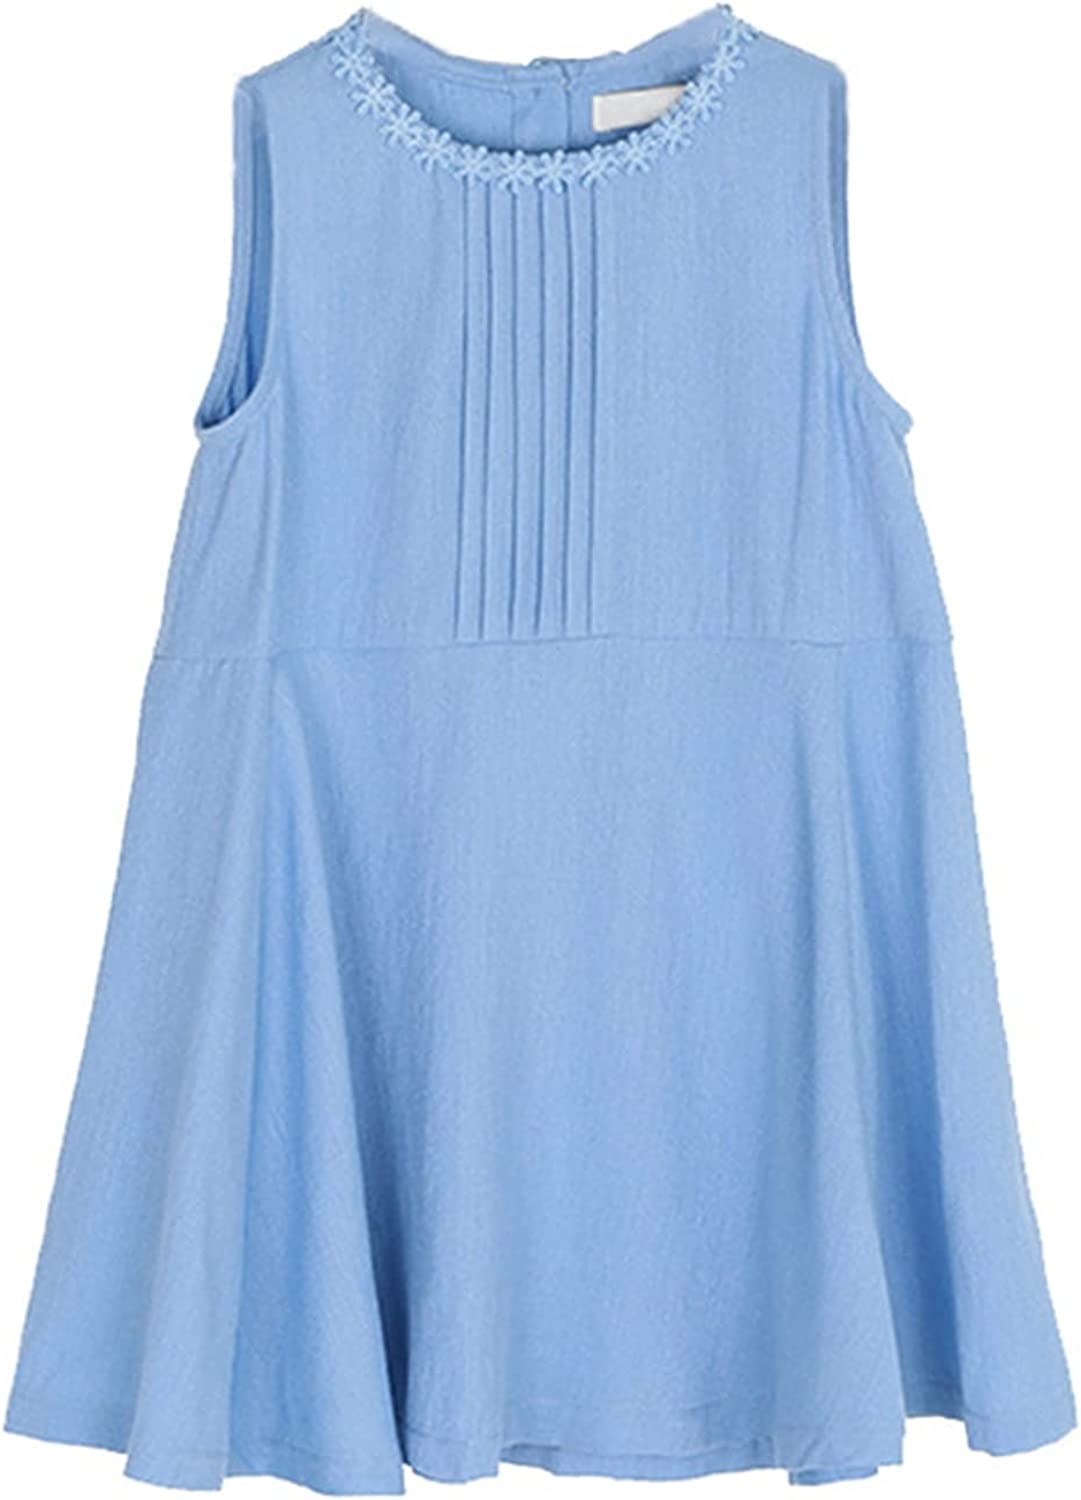 Generic2 Kids Dresses Summer Solid Color Breathable Sleeveless Cotton Dresses Girls Party Casual Crew Neck Princess Dress